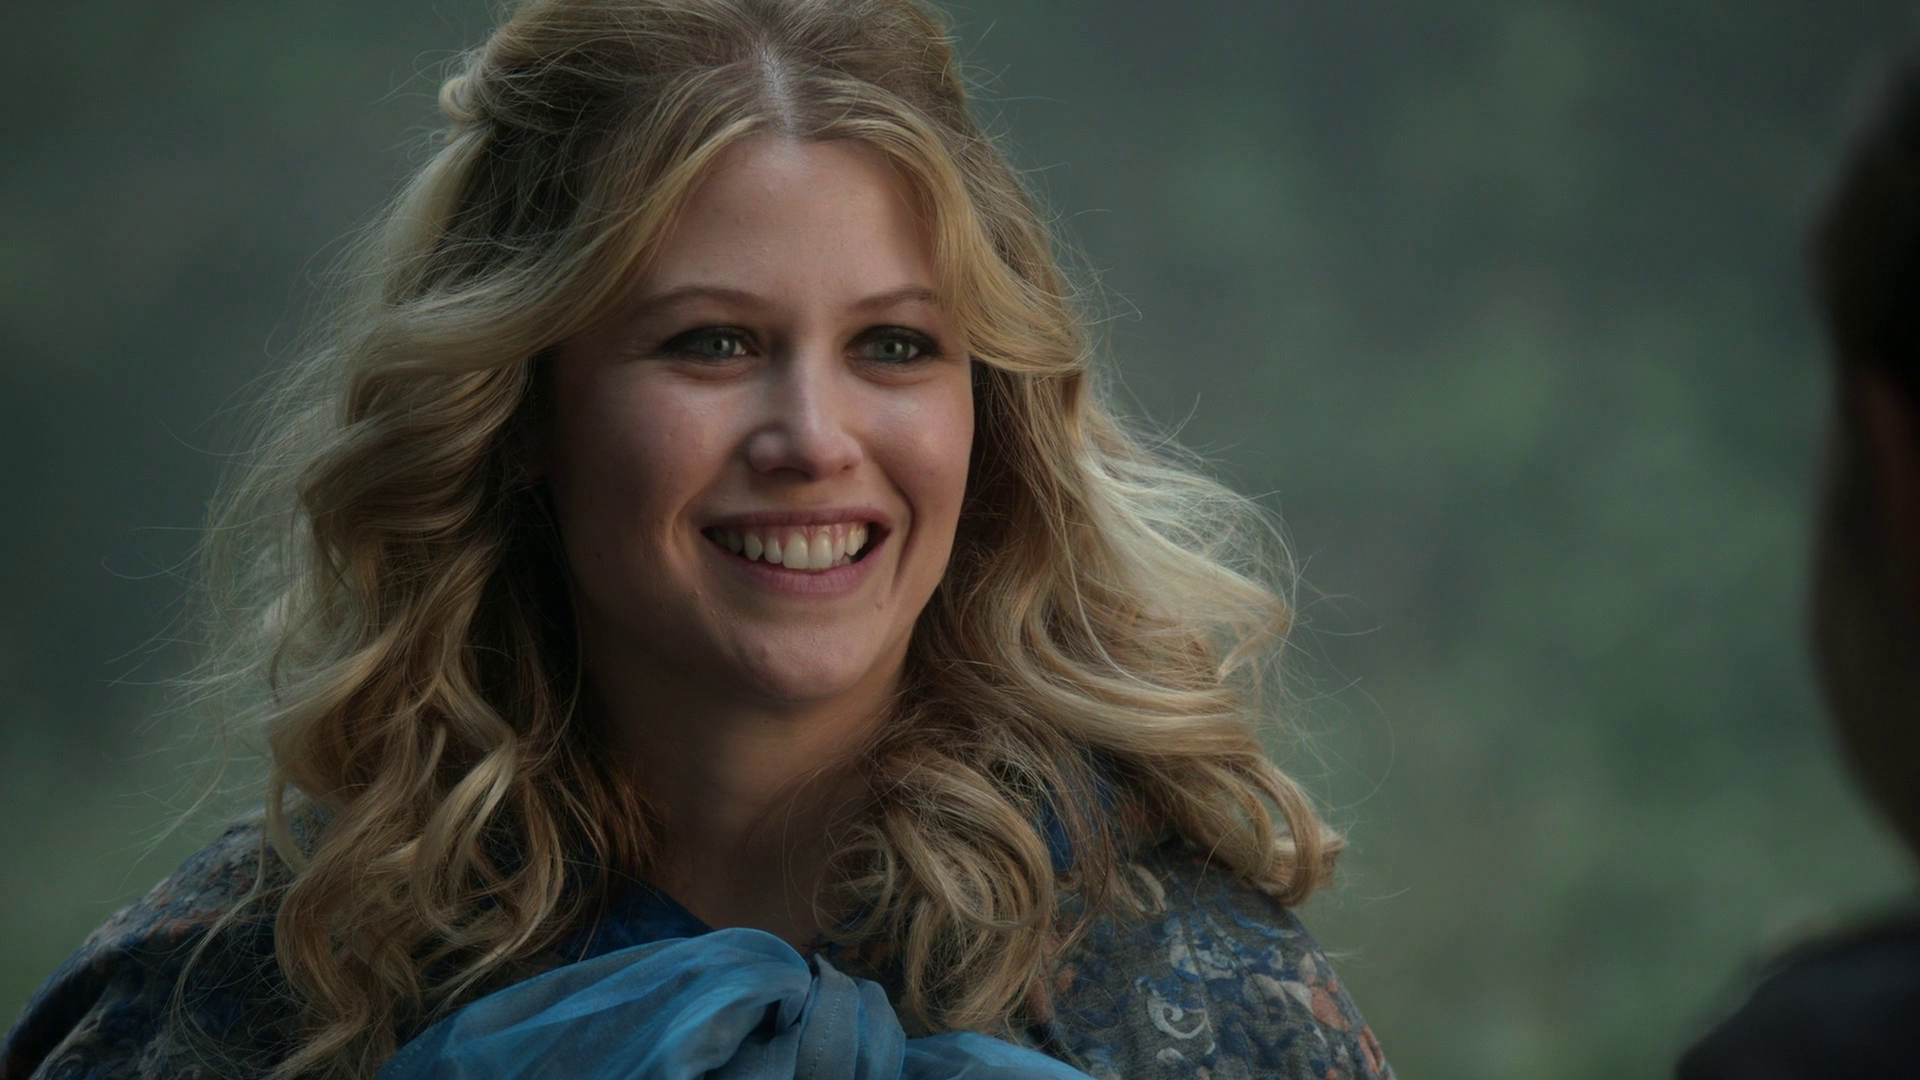 Alice (Once Upon a Time)